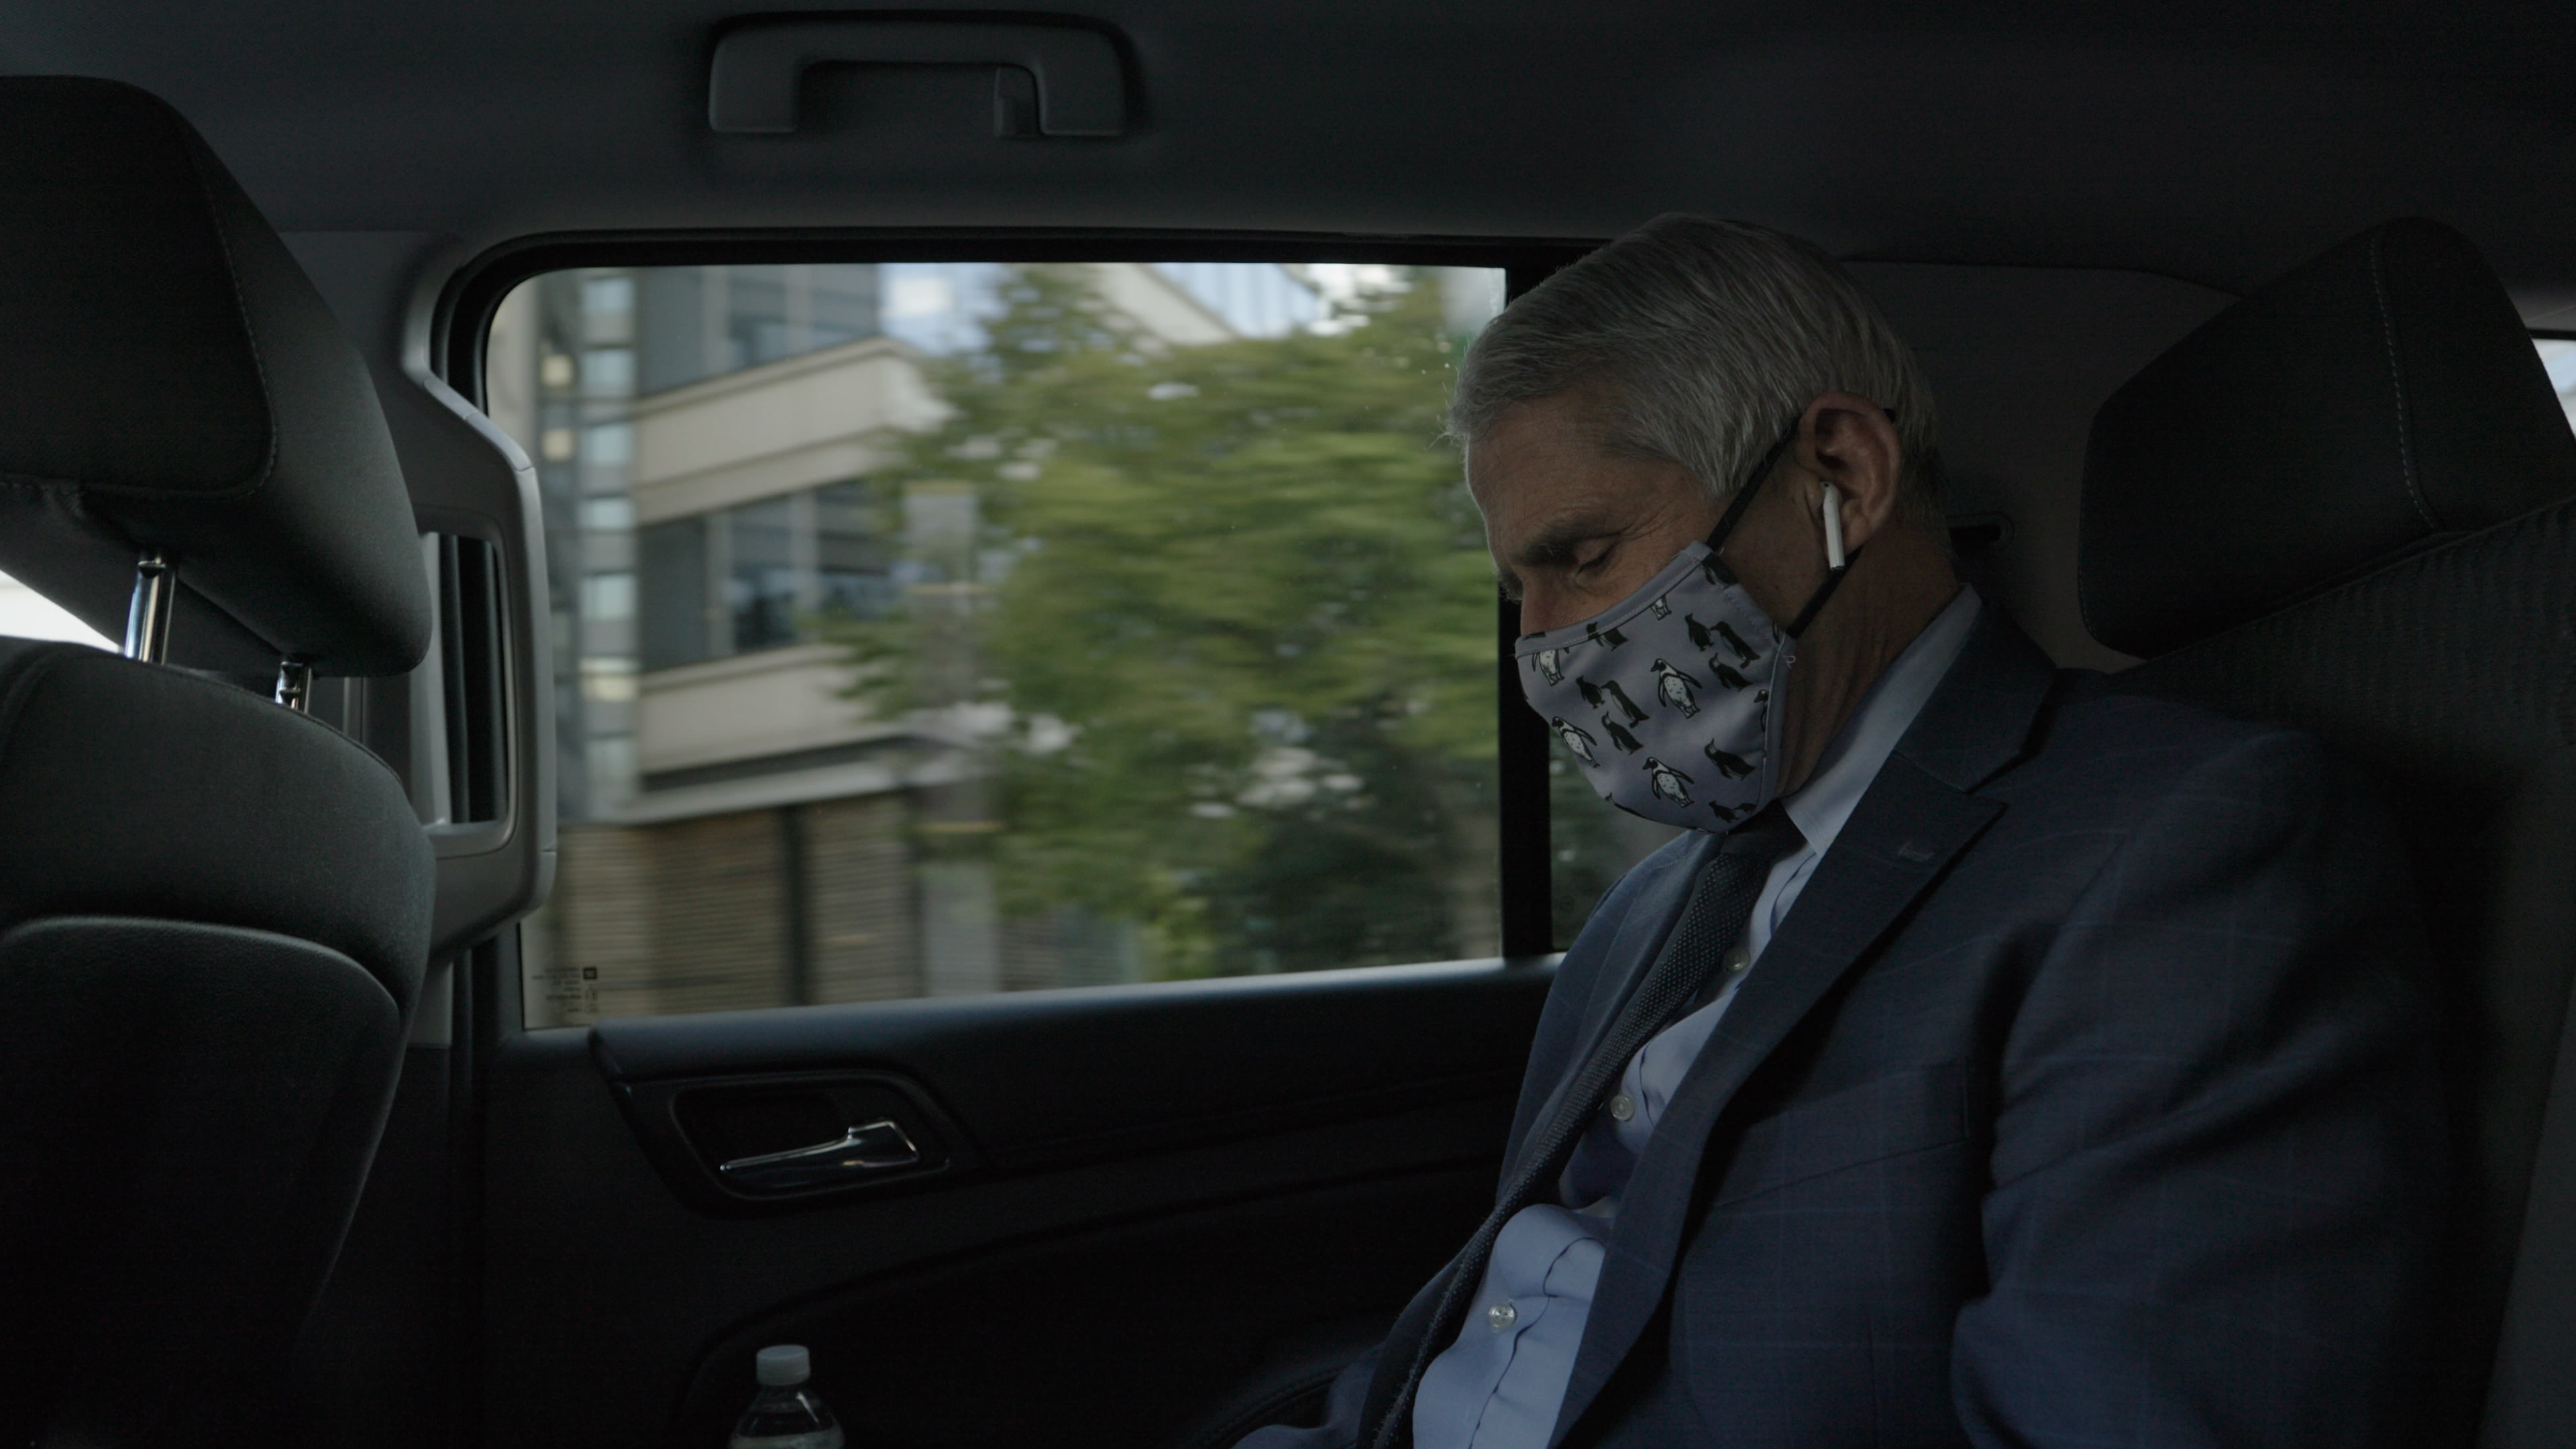 Dr. Anthony Fauci talks on the phone in his security detail car. Dr. Fauci received security after receiving death threats in 2020.  (National Geographic for Disney+)